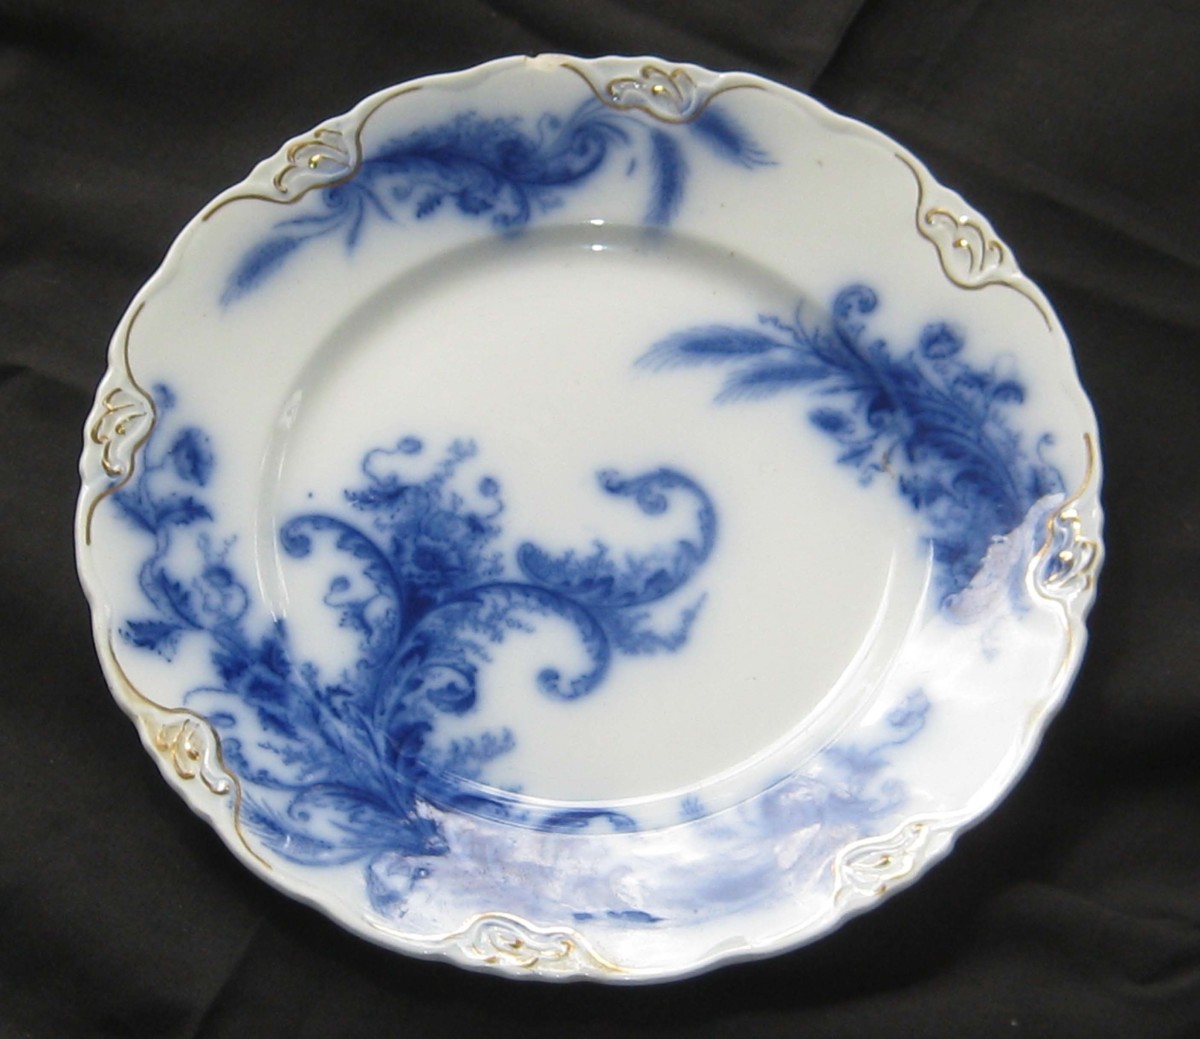 Flow Blue: History and Value of Blue-and-White Antique China